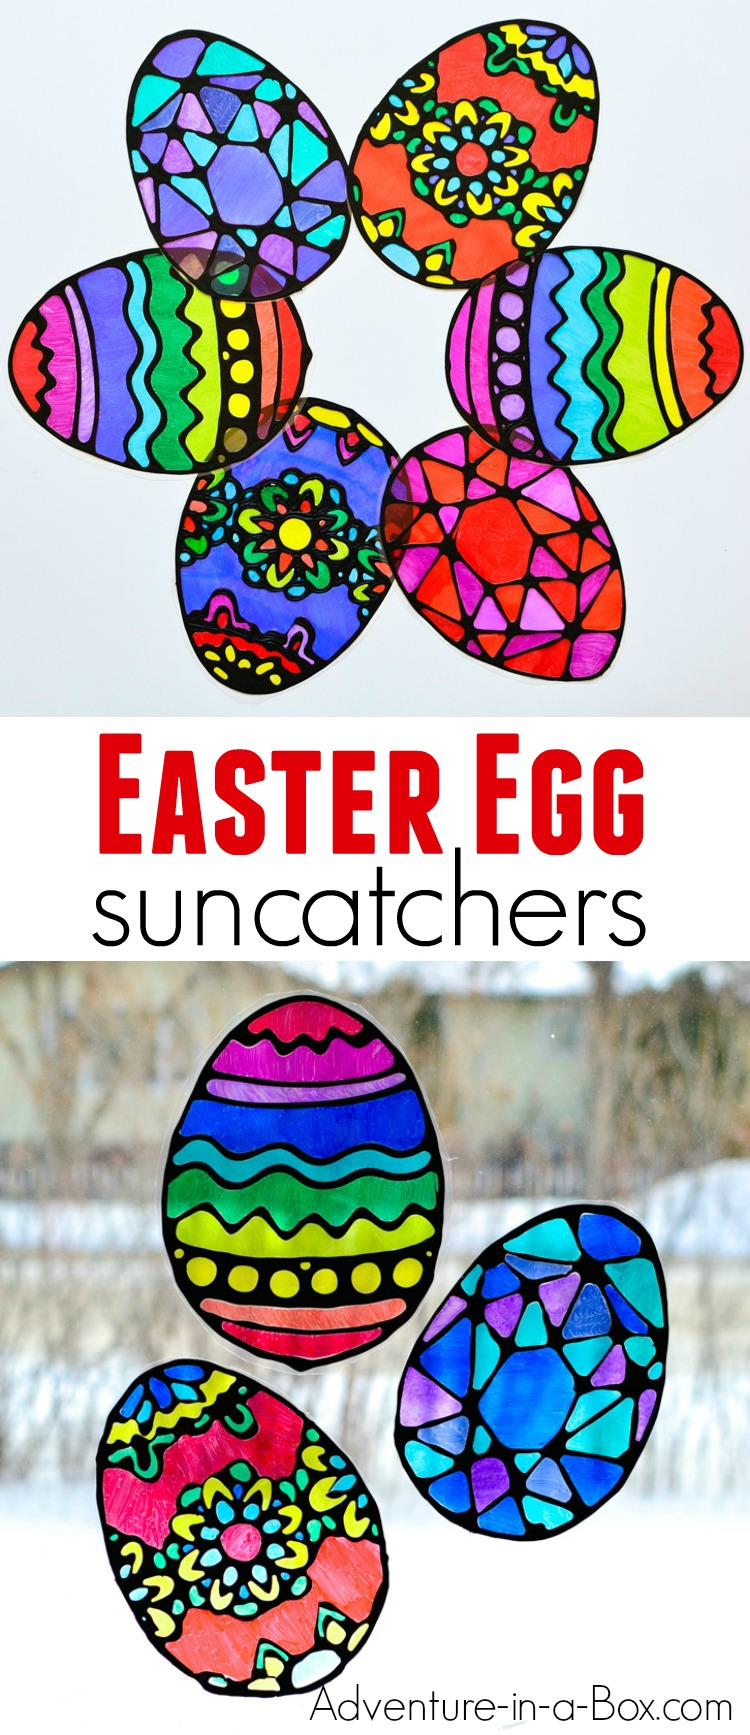 Make stained glass Easter egg suncatchers with kids! This craft comes with four free printable Easter egg designs and makes for a quick and easy way to decorate windows for Easter.